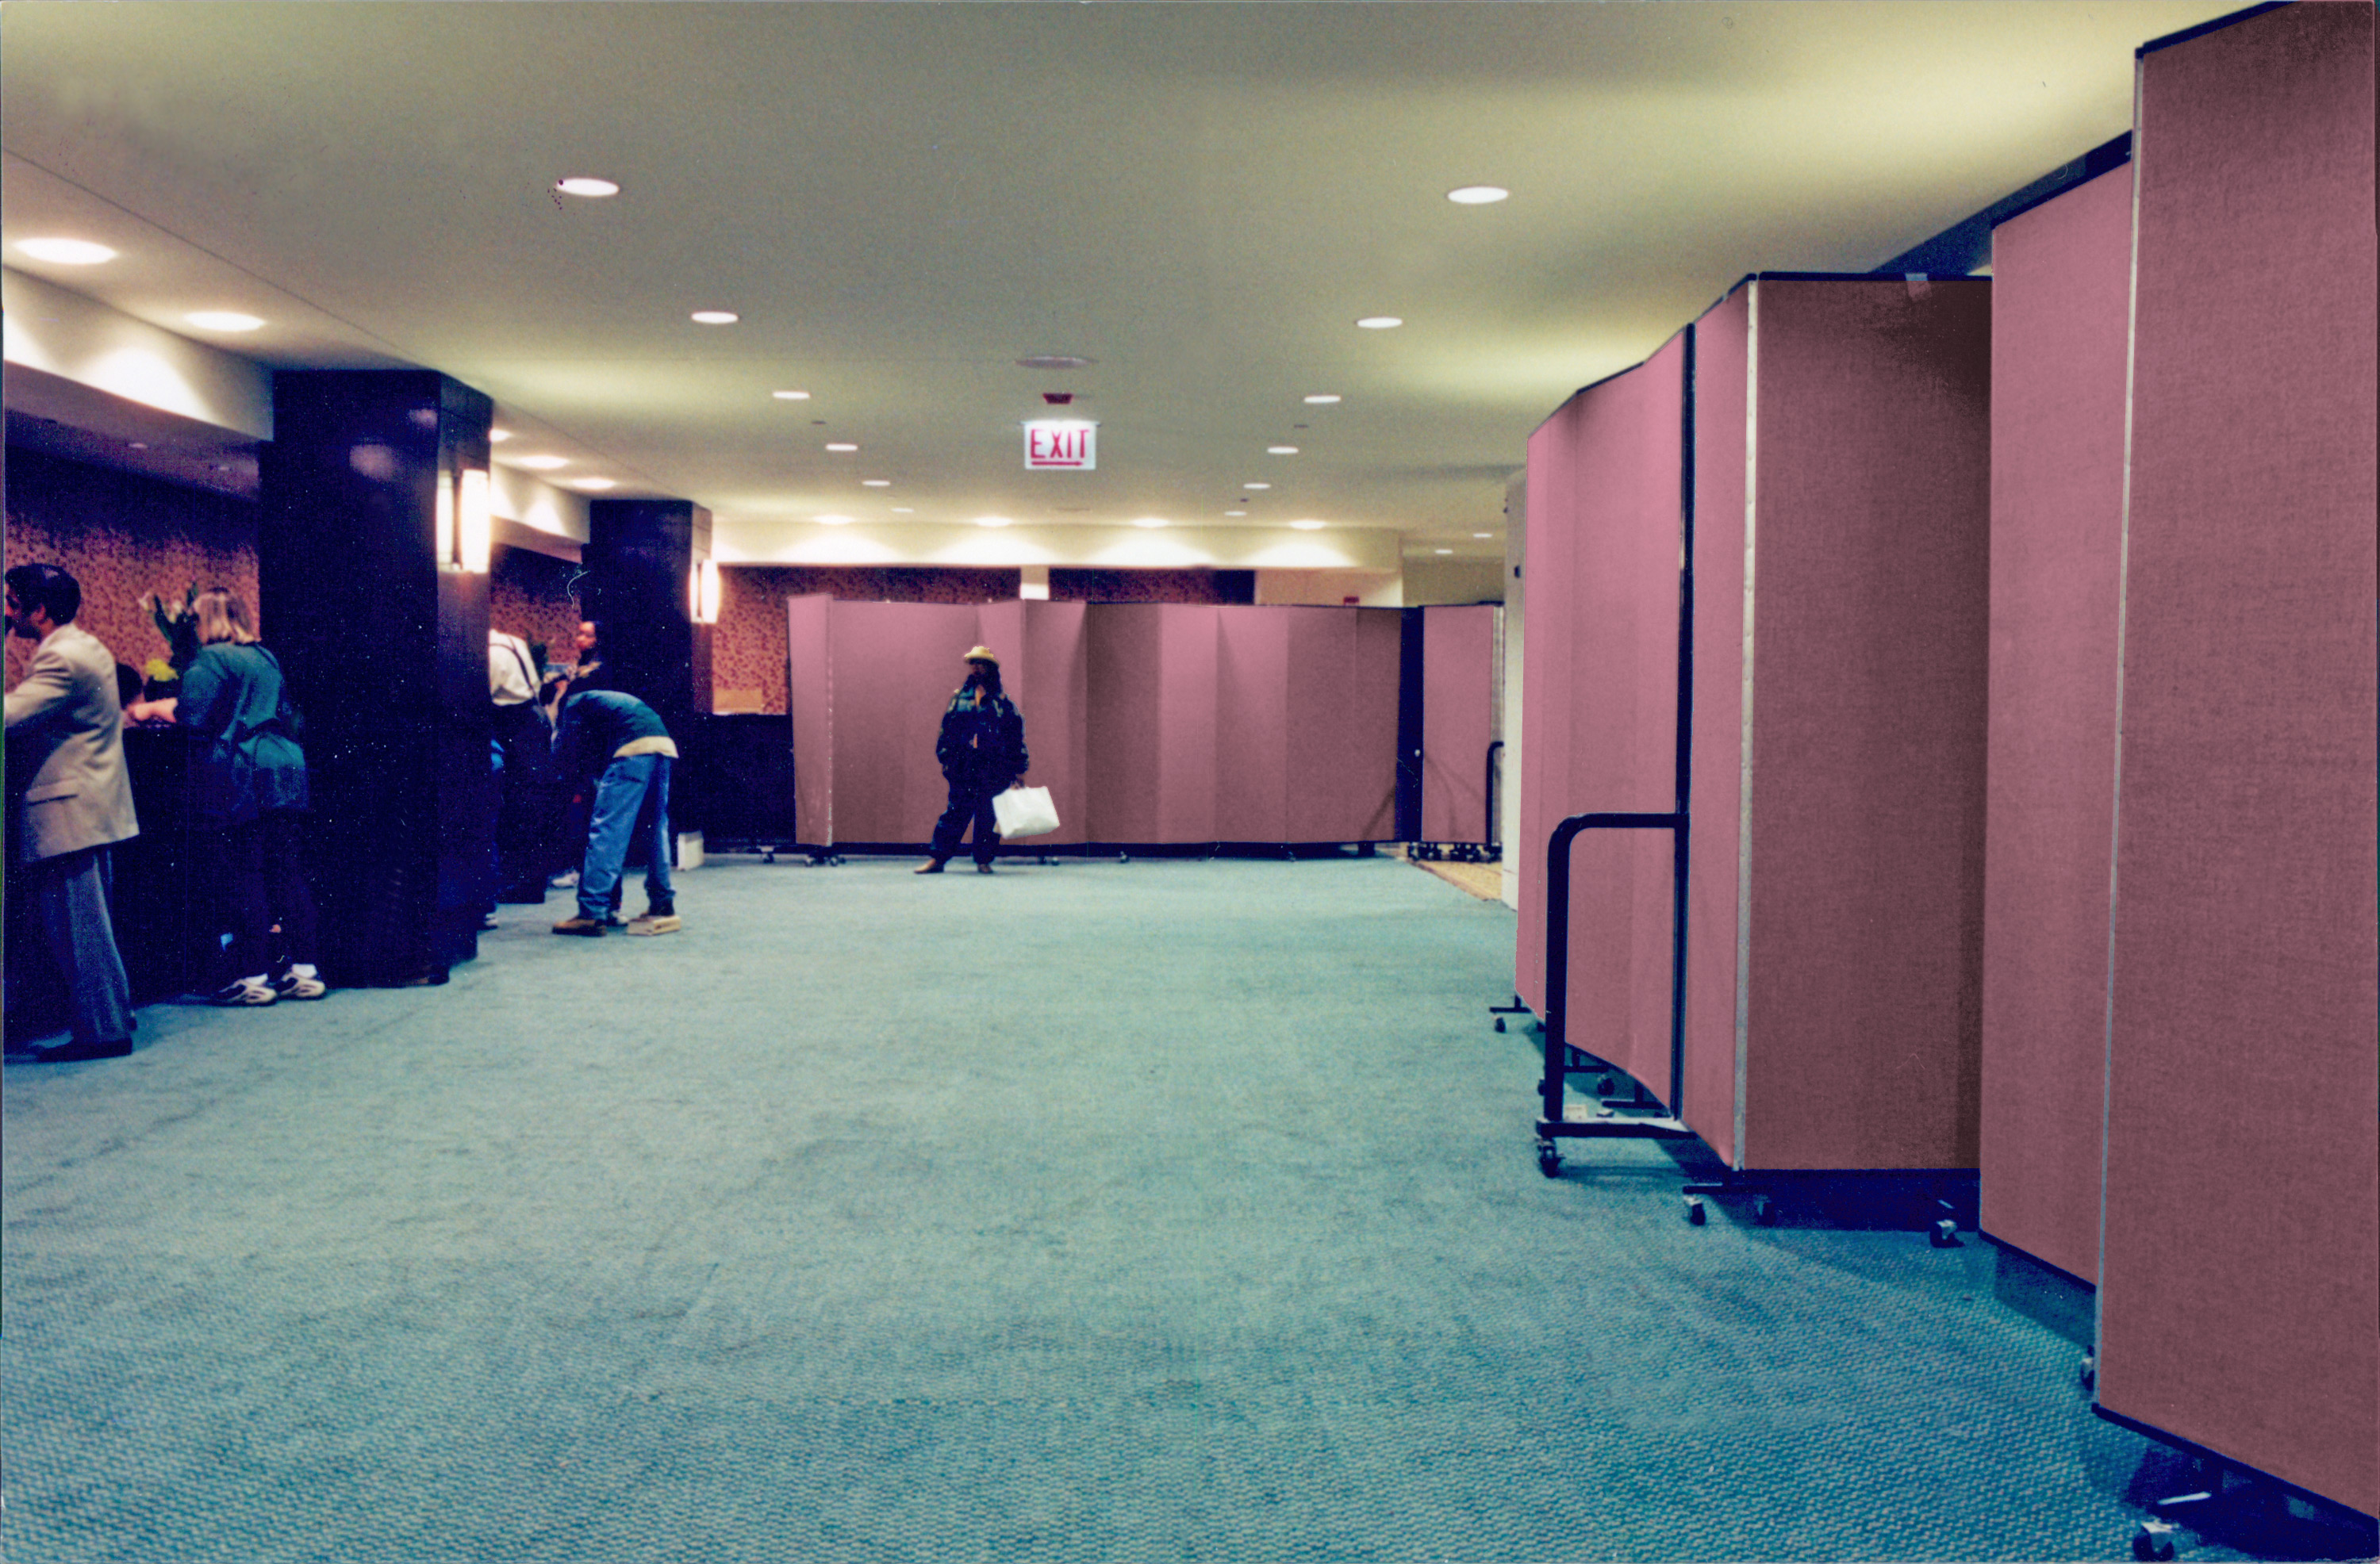 Portable partitions hide construction for hotel guests checking in